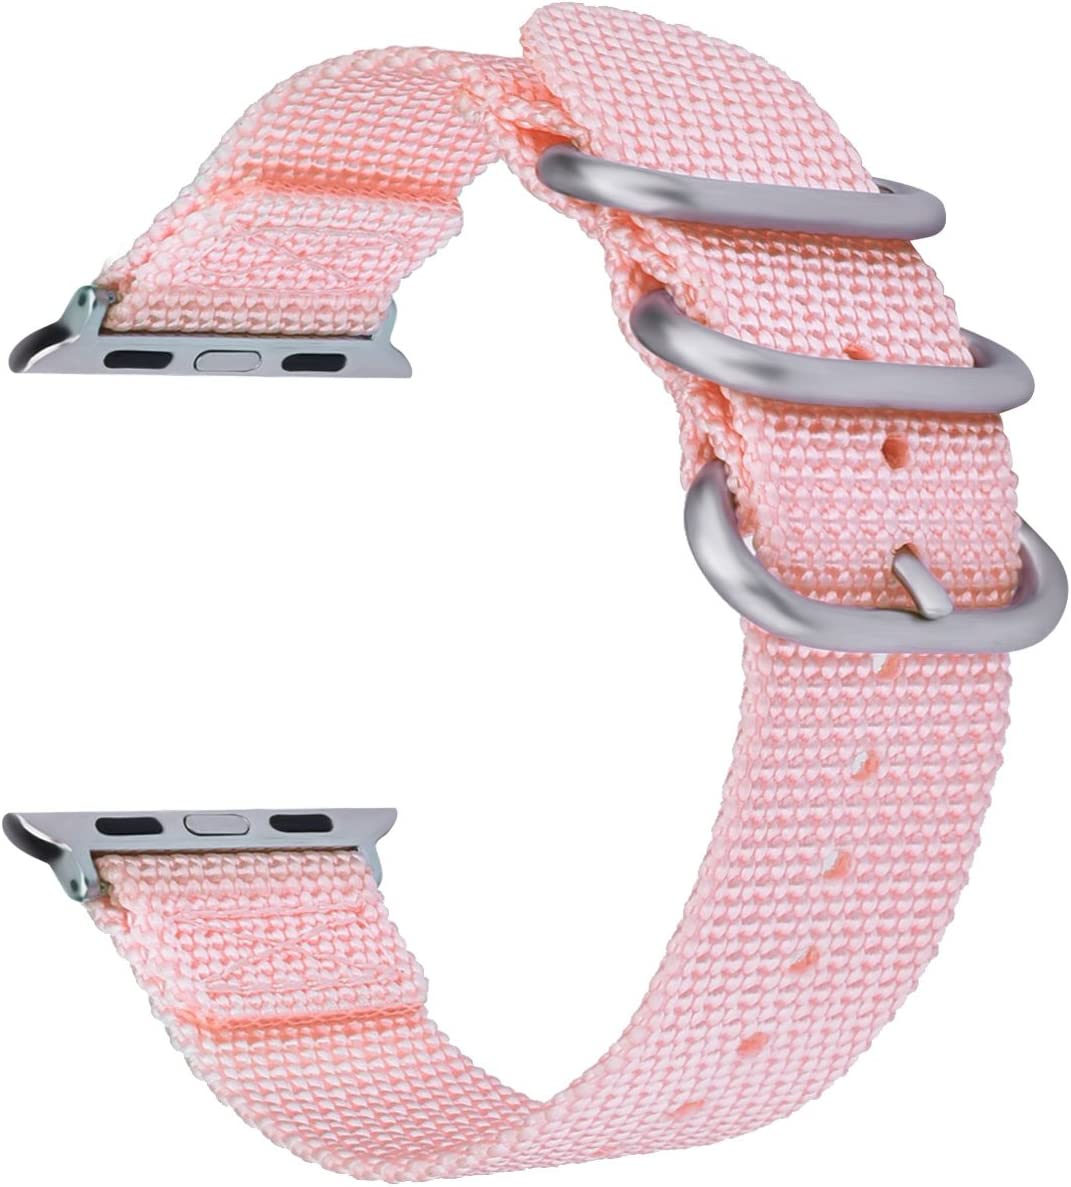 VIGOSS for Apple Watch Band 42mm 38mm Men Women, Soft Woven Nylon NATO iWatch Bands Replacement Strap with Metal Buckle Wristband for Apple Watch Series 3 2 1, Sport,Edition (5-Pink, 38mm)